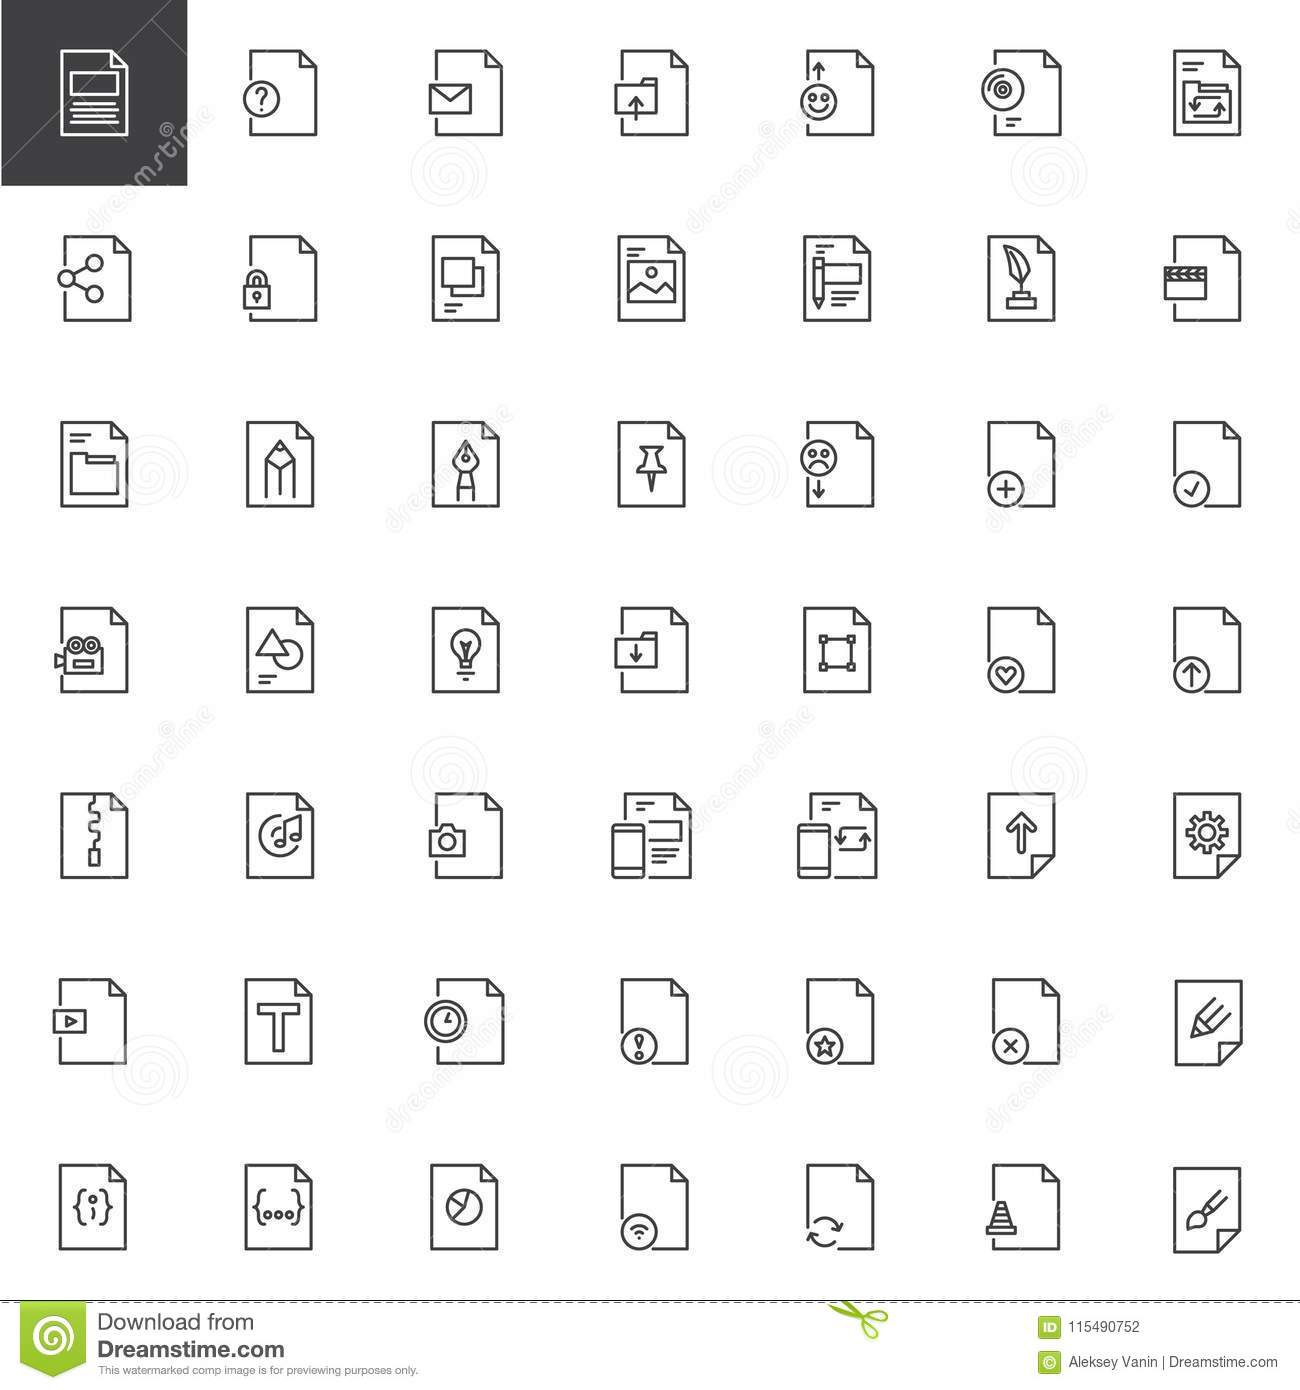 File Formats Outline Icons Set Stock Vector - Illustration of